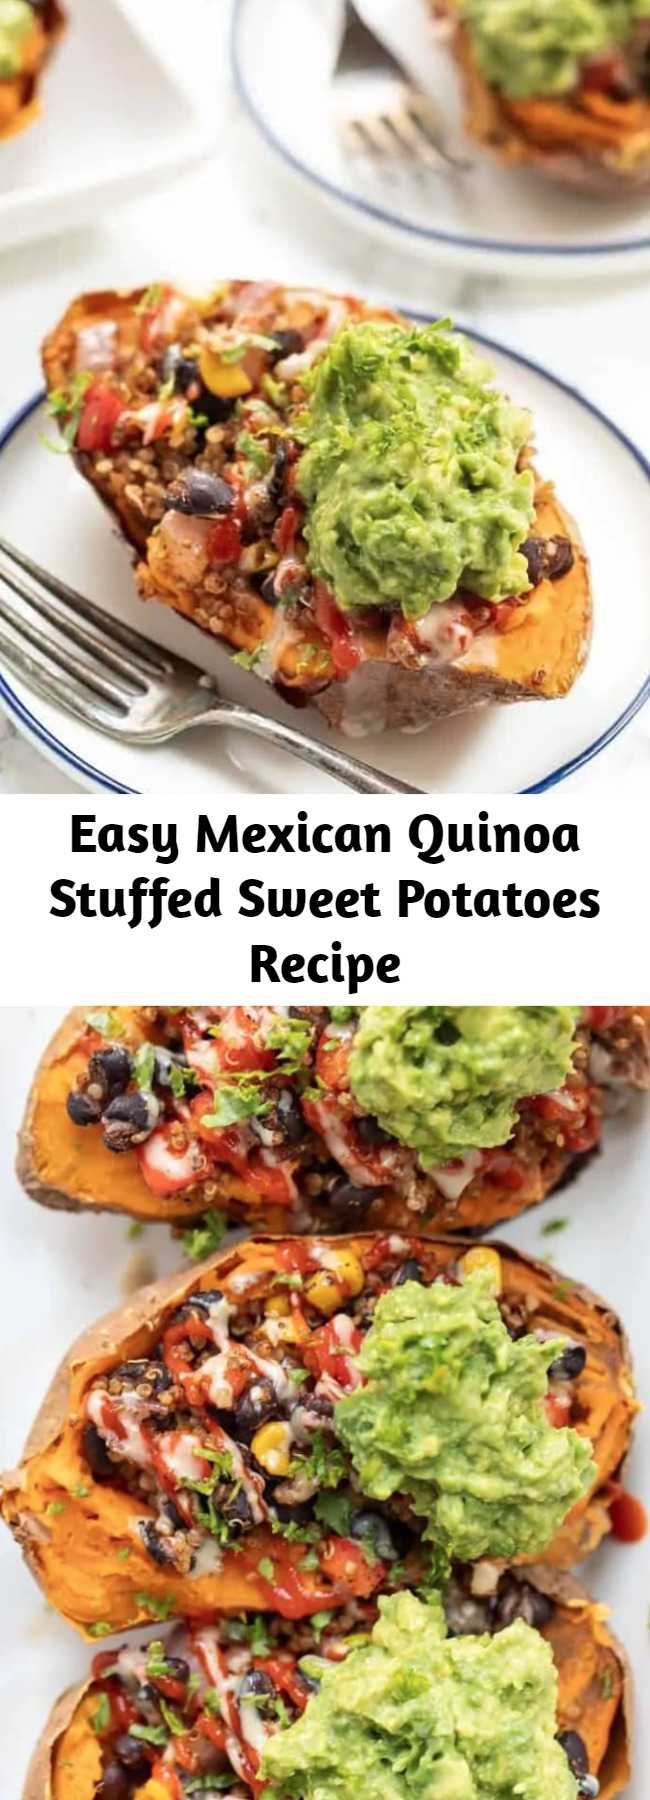 Easy Mexican Quinoa Stuffed Sweet Potatoes Recipe - These Mexican Quinoa STUFFED Sweet Potatoes are the ultimate plant-based meal! Packed with fiber and protein, they're filling, tasty and easy to make! Easy, healthy and so delicious. Stuffed with black beans, quinoa, guacamole, and more healthy ingredients! #stuffedsweetpotatoes #mexicanquinoa #quinoa #quinoarecipe #vegandinner